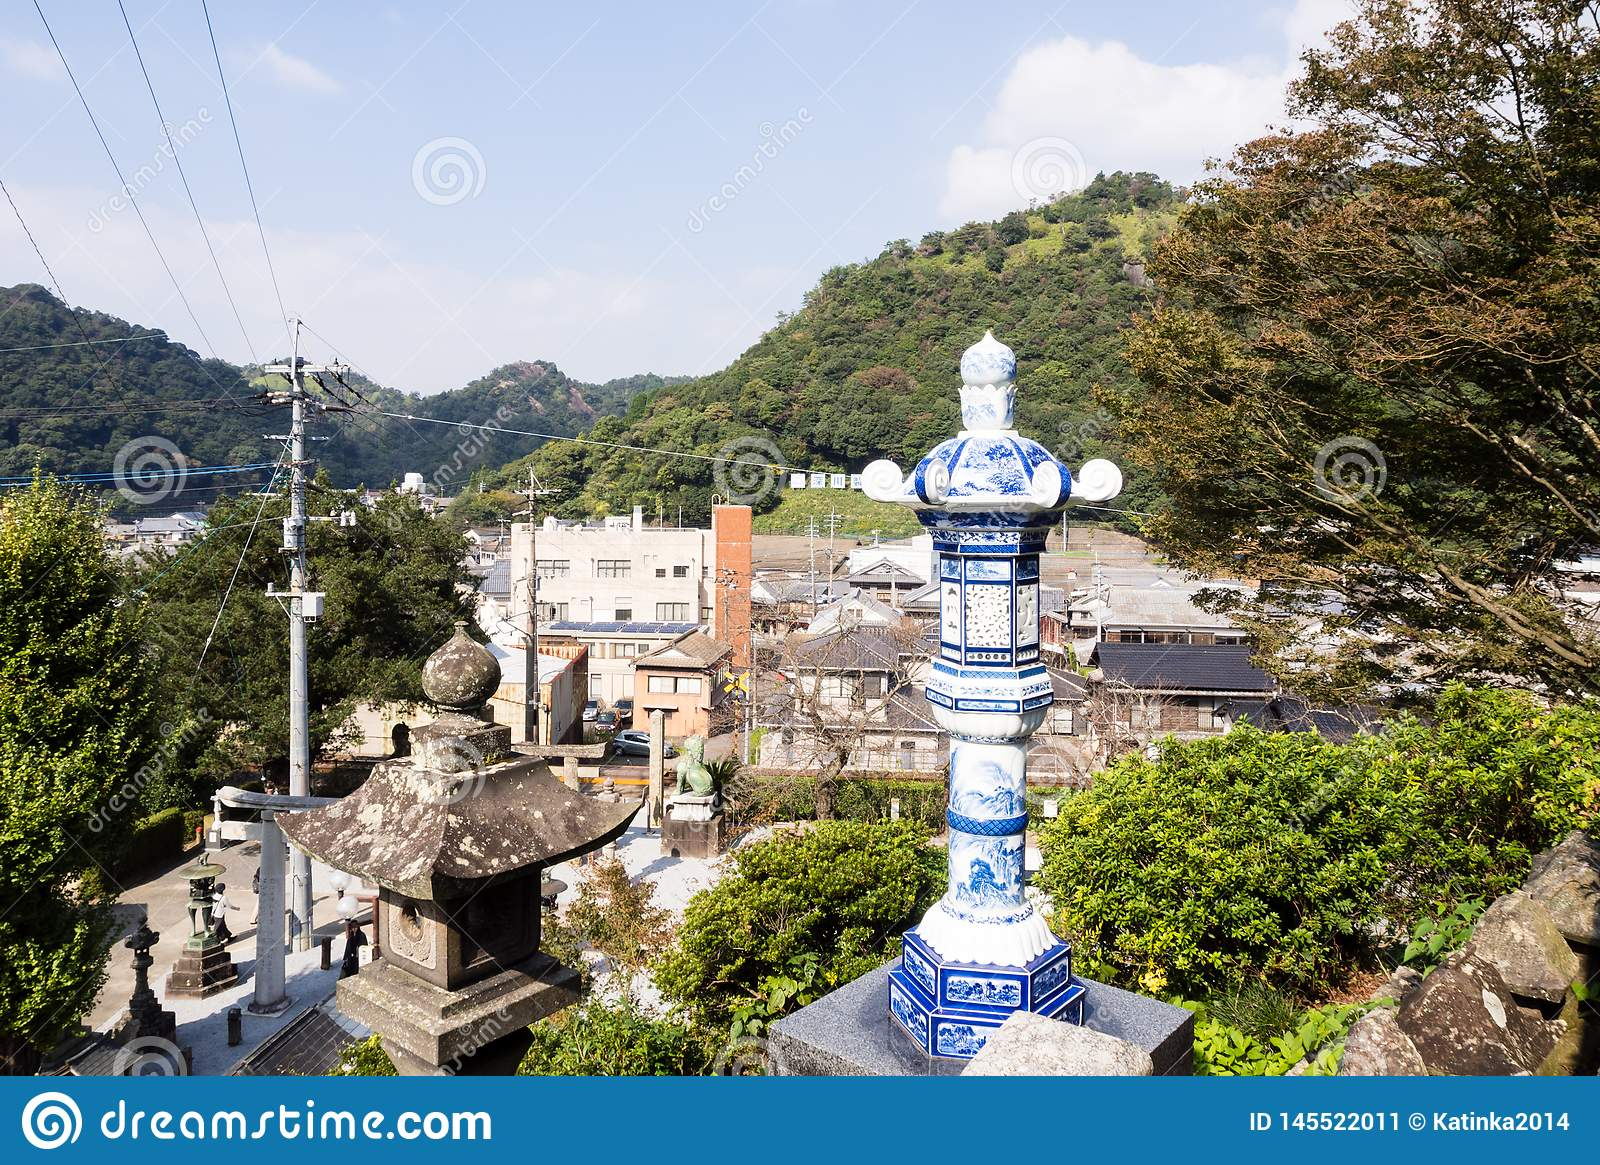 Panoramic view of Arita town from the grounds of historic Tozan shrine famous for its ceramic art